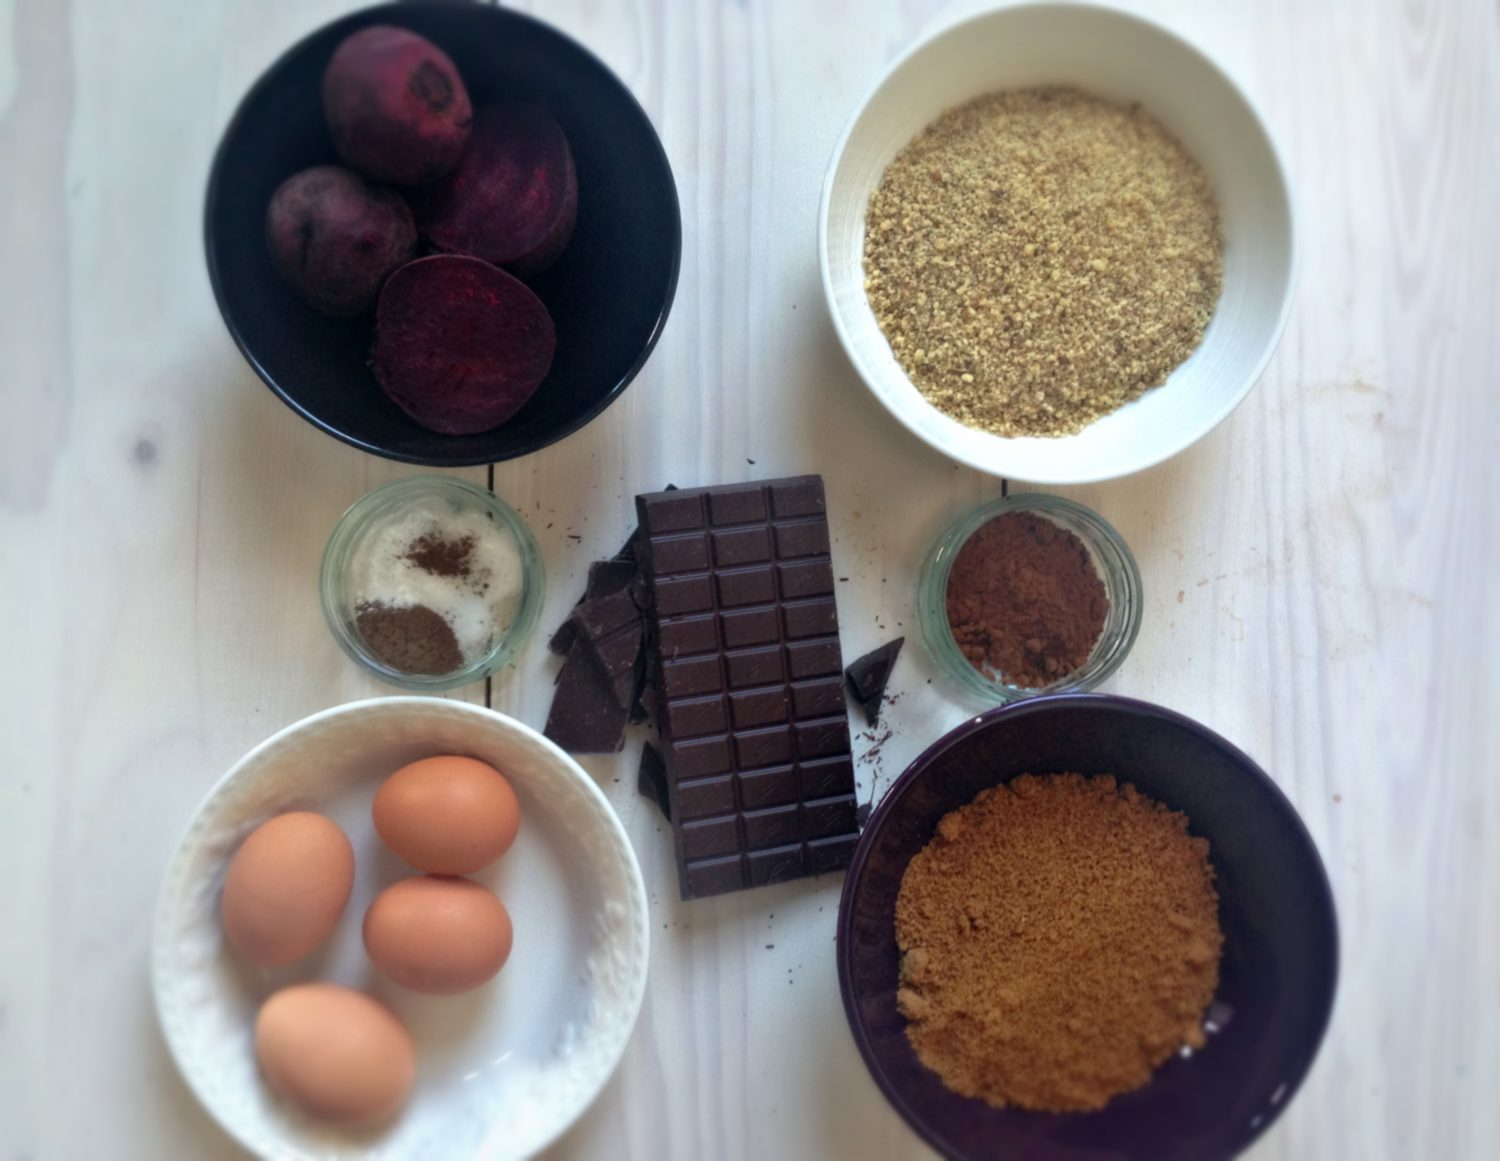 Flourless beetroot cake ingredients